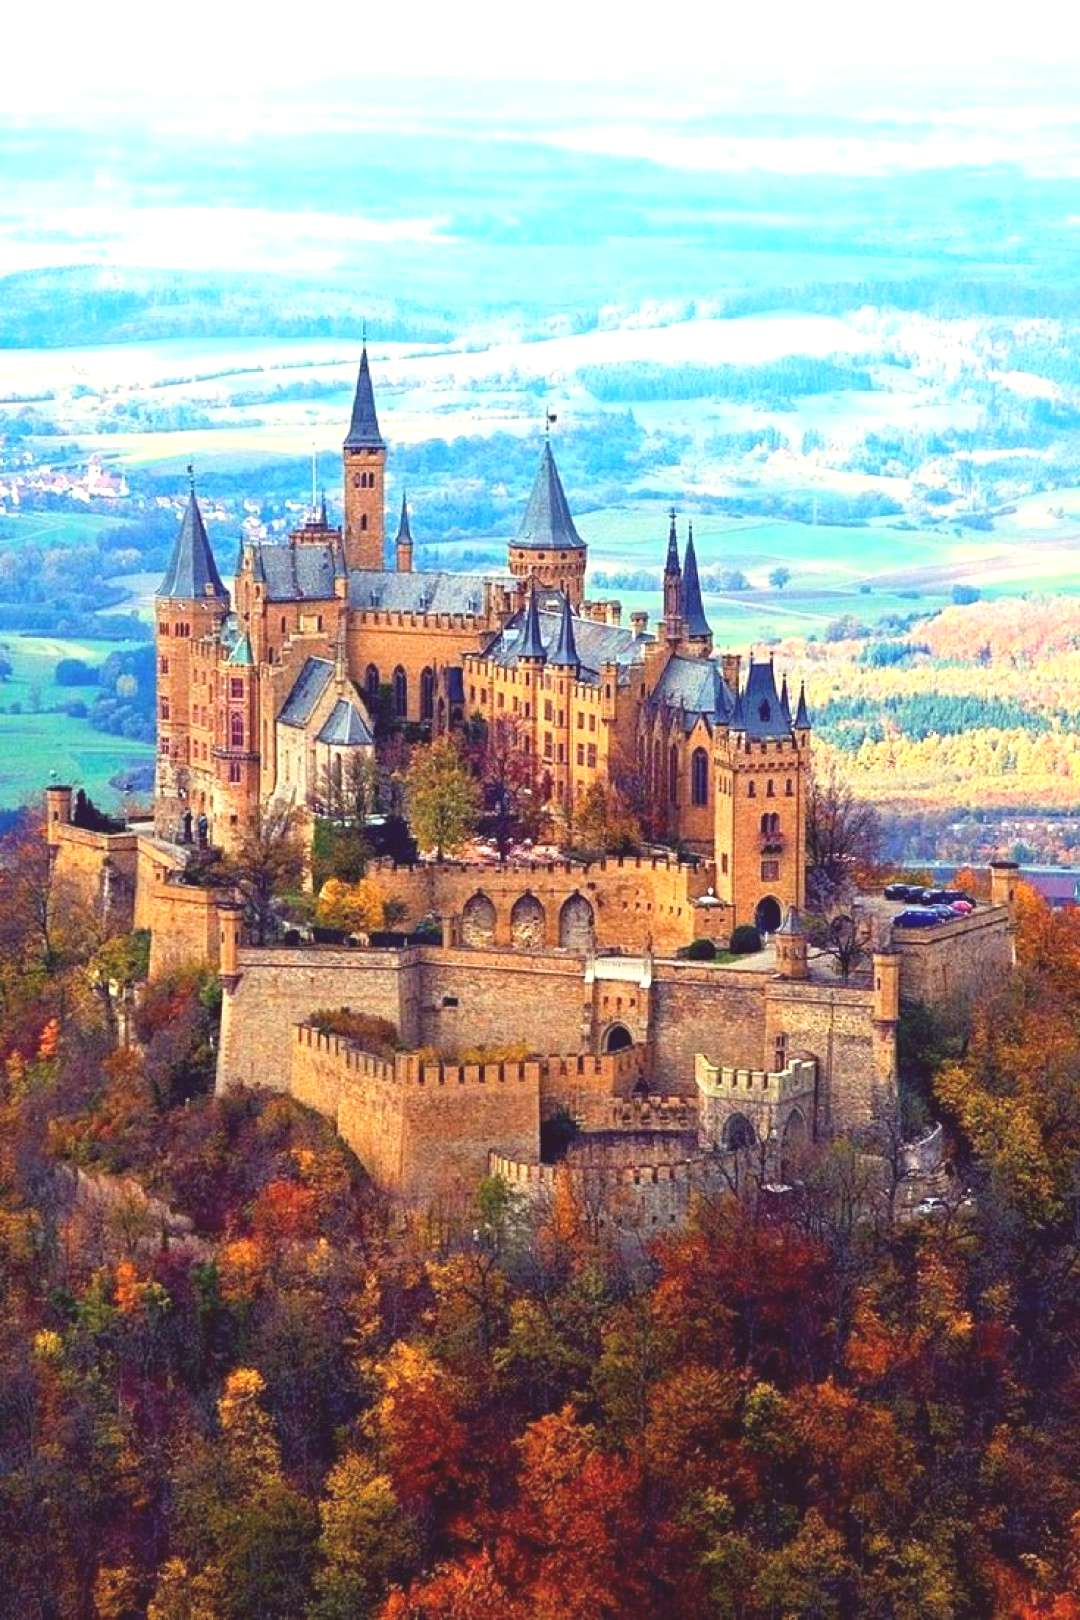 Hohenzollern Castle Hohenzollern Castle, Germany The ancestral seat of the Imperial House of Hohenz